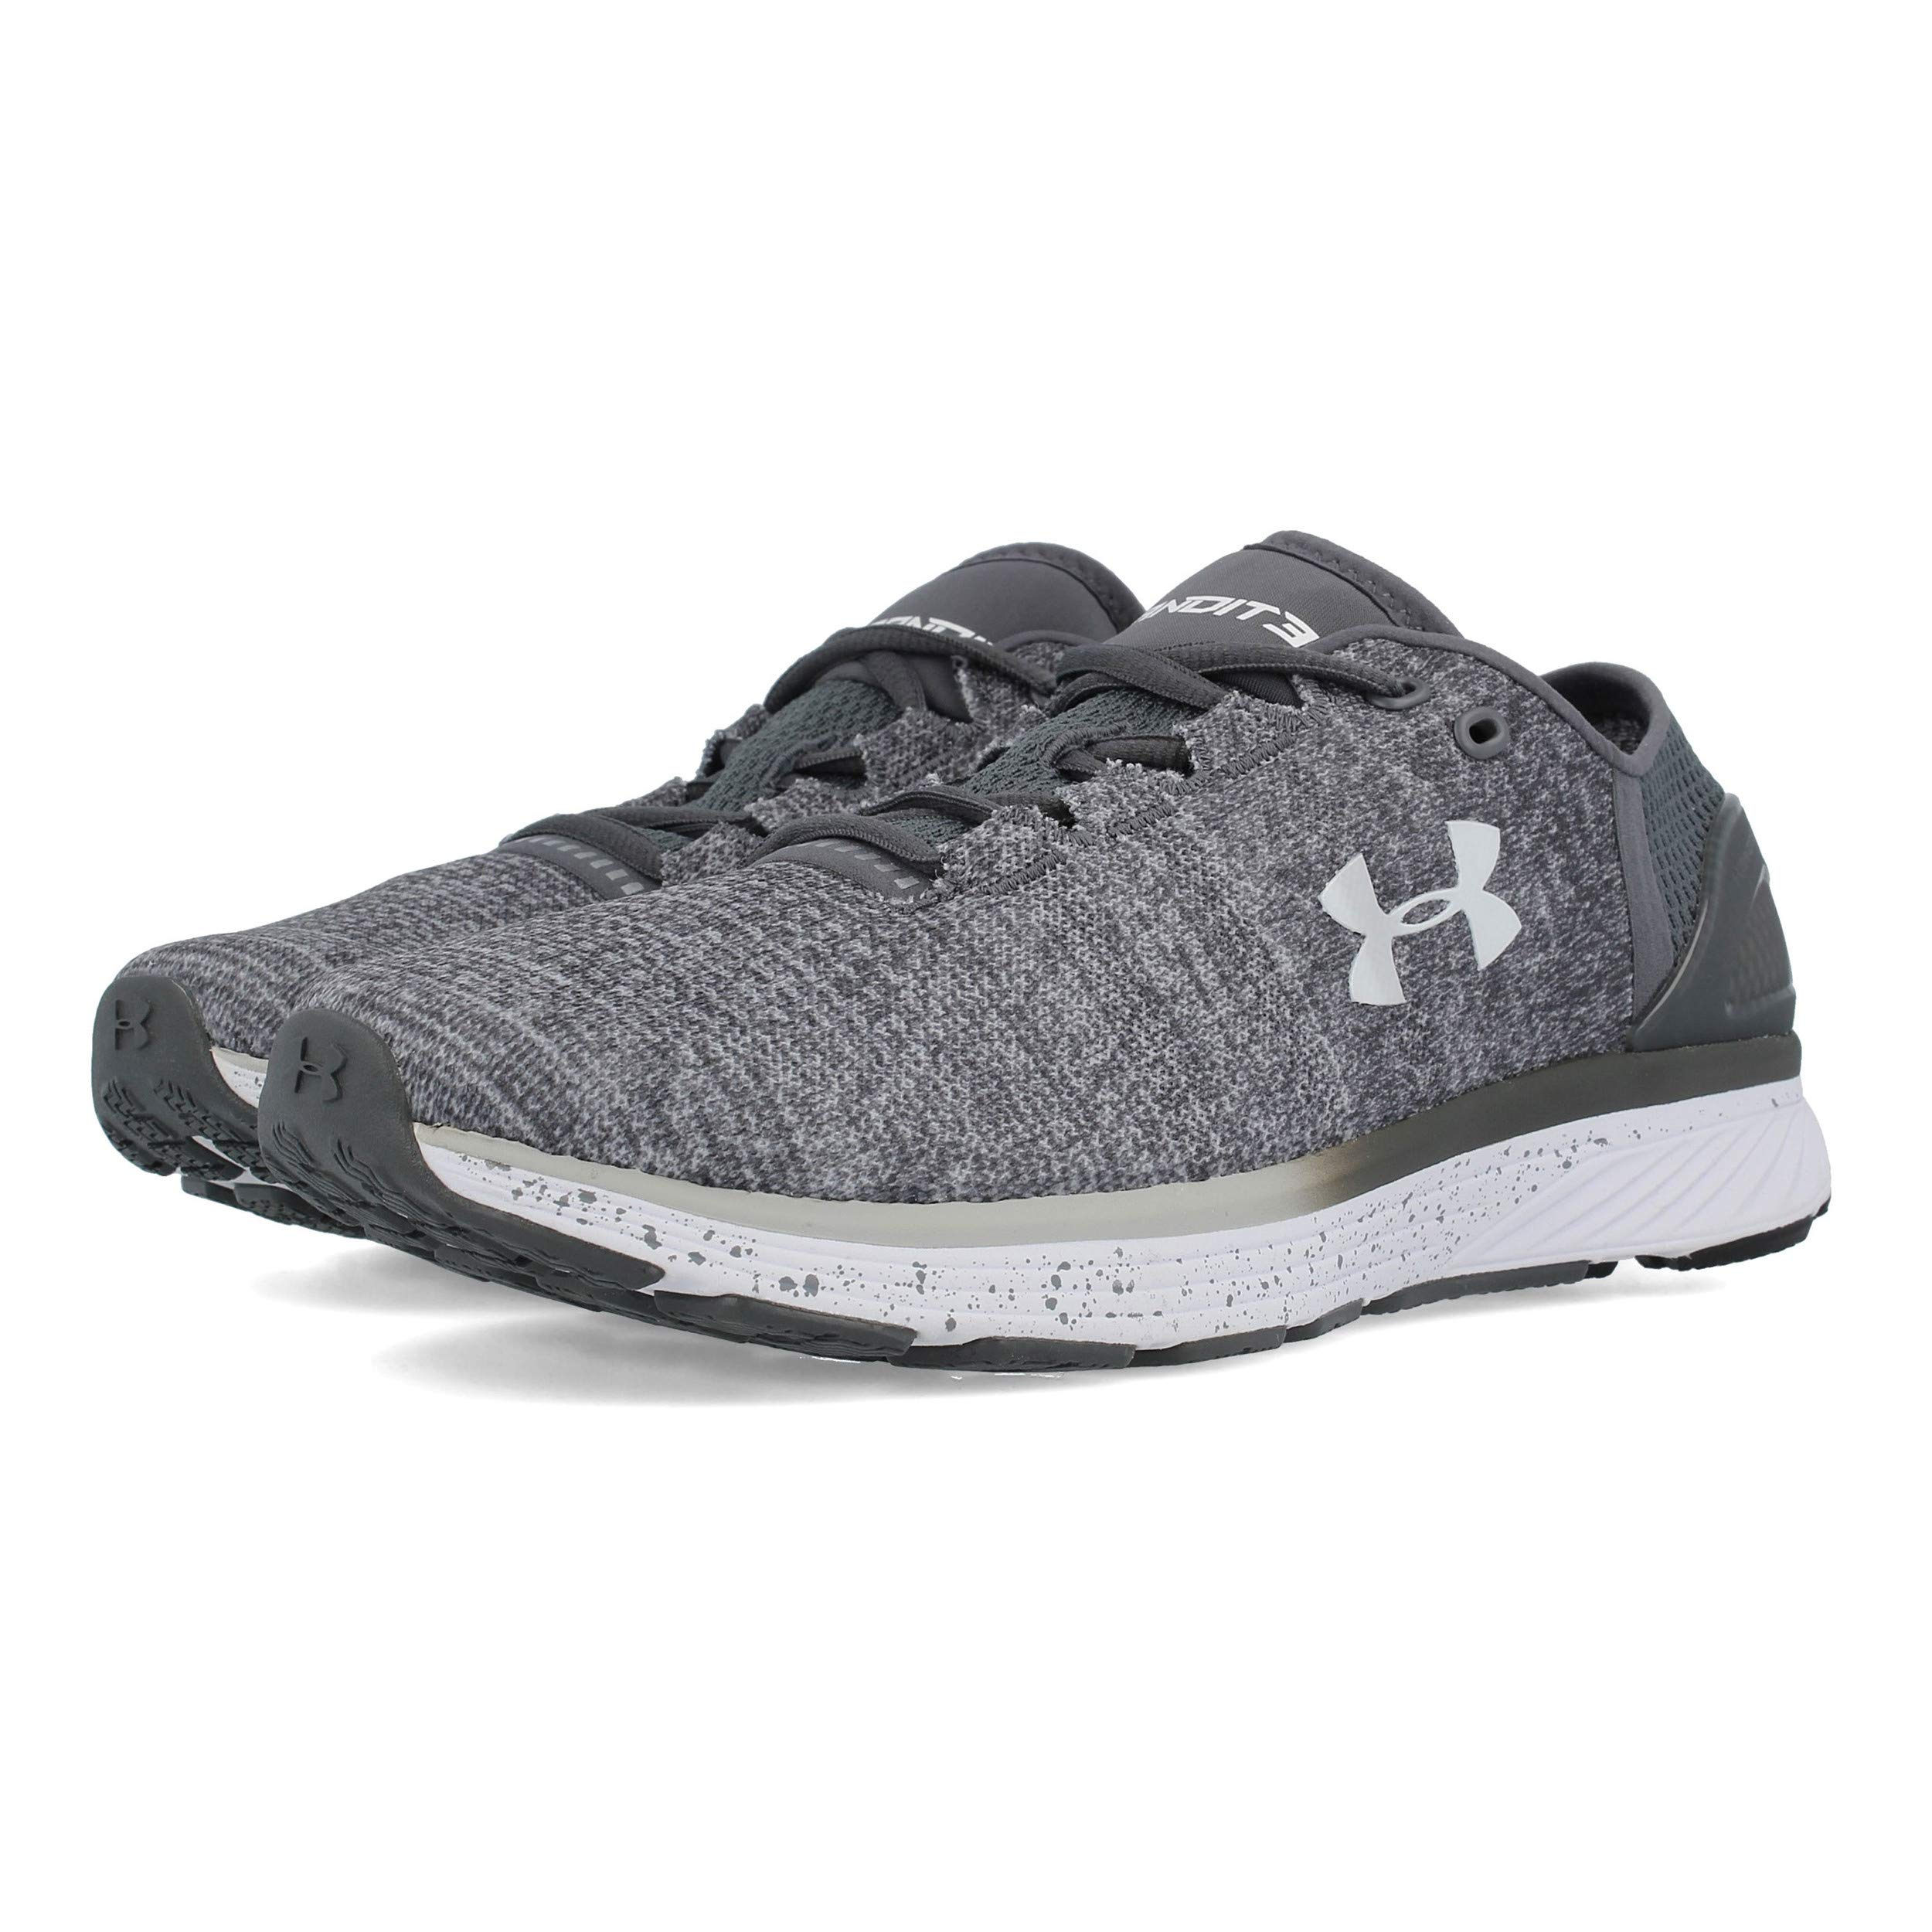 2b25232d Under Armour Men's Charged Bandit 3 Running Shoe, Glacier (002)/Rhino Gray,  9.5